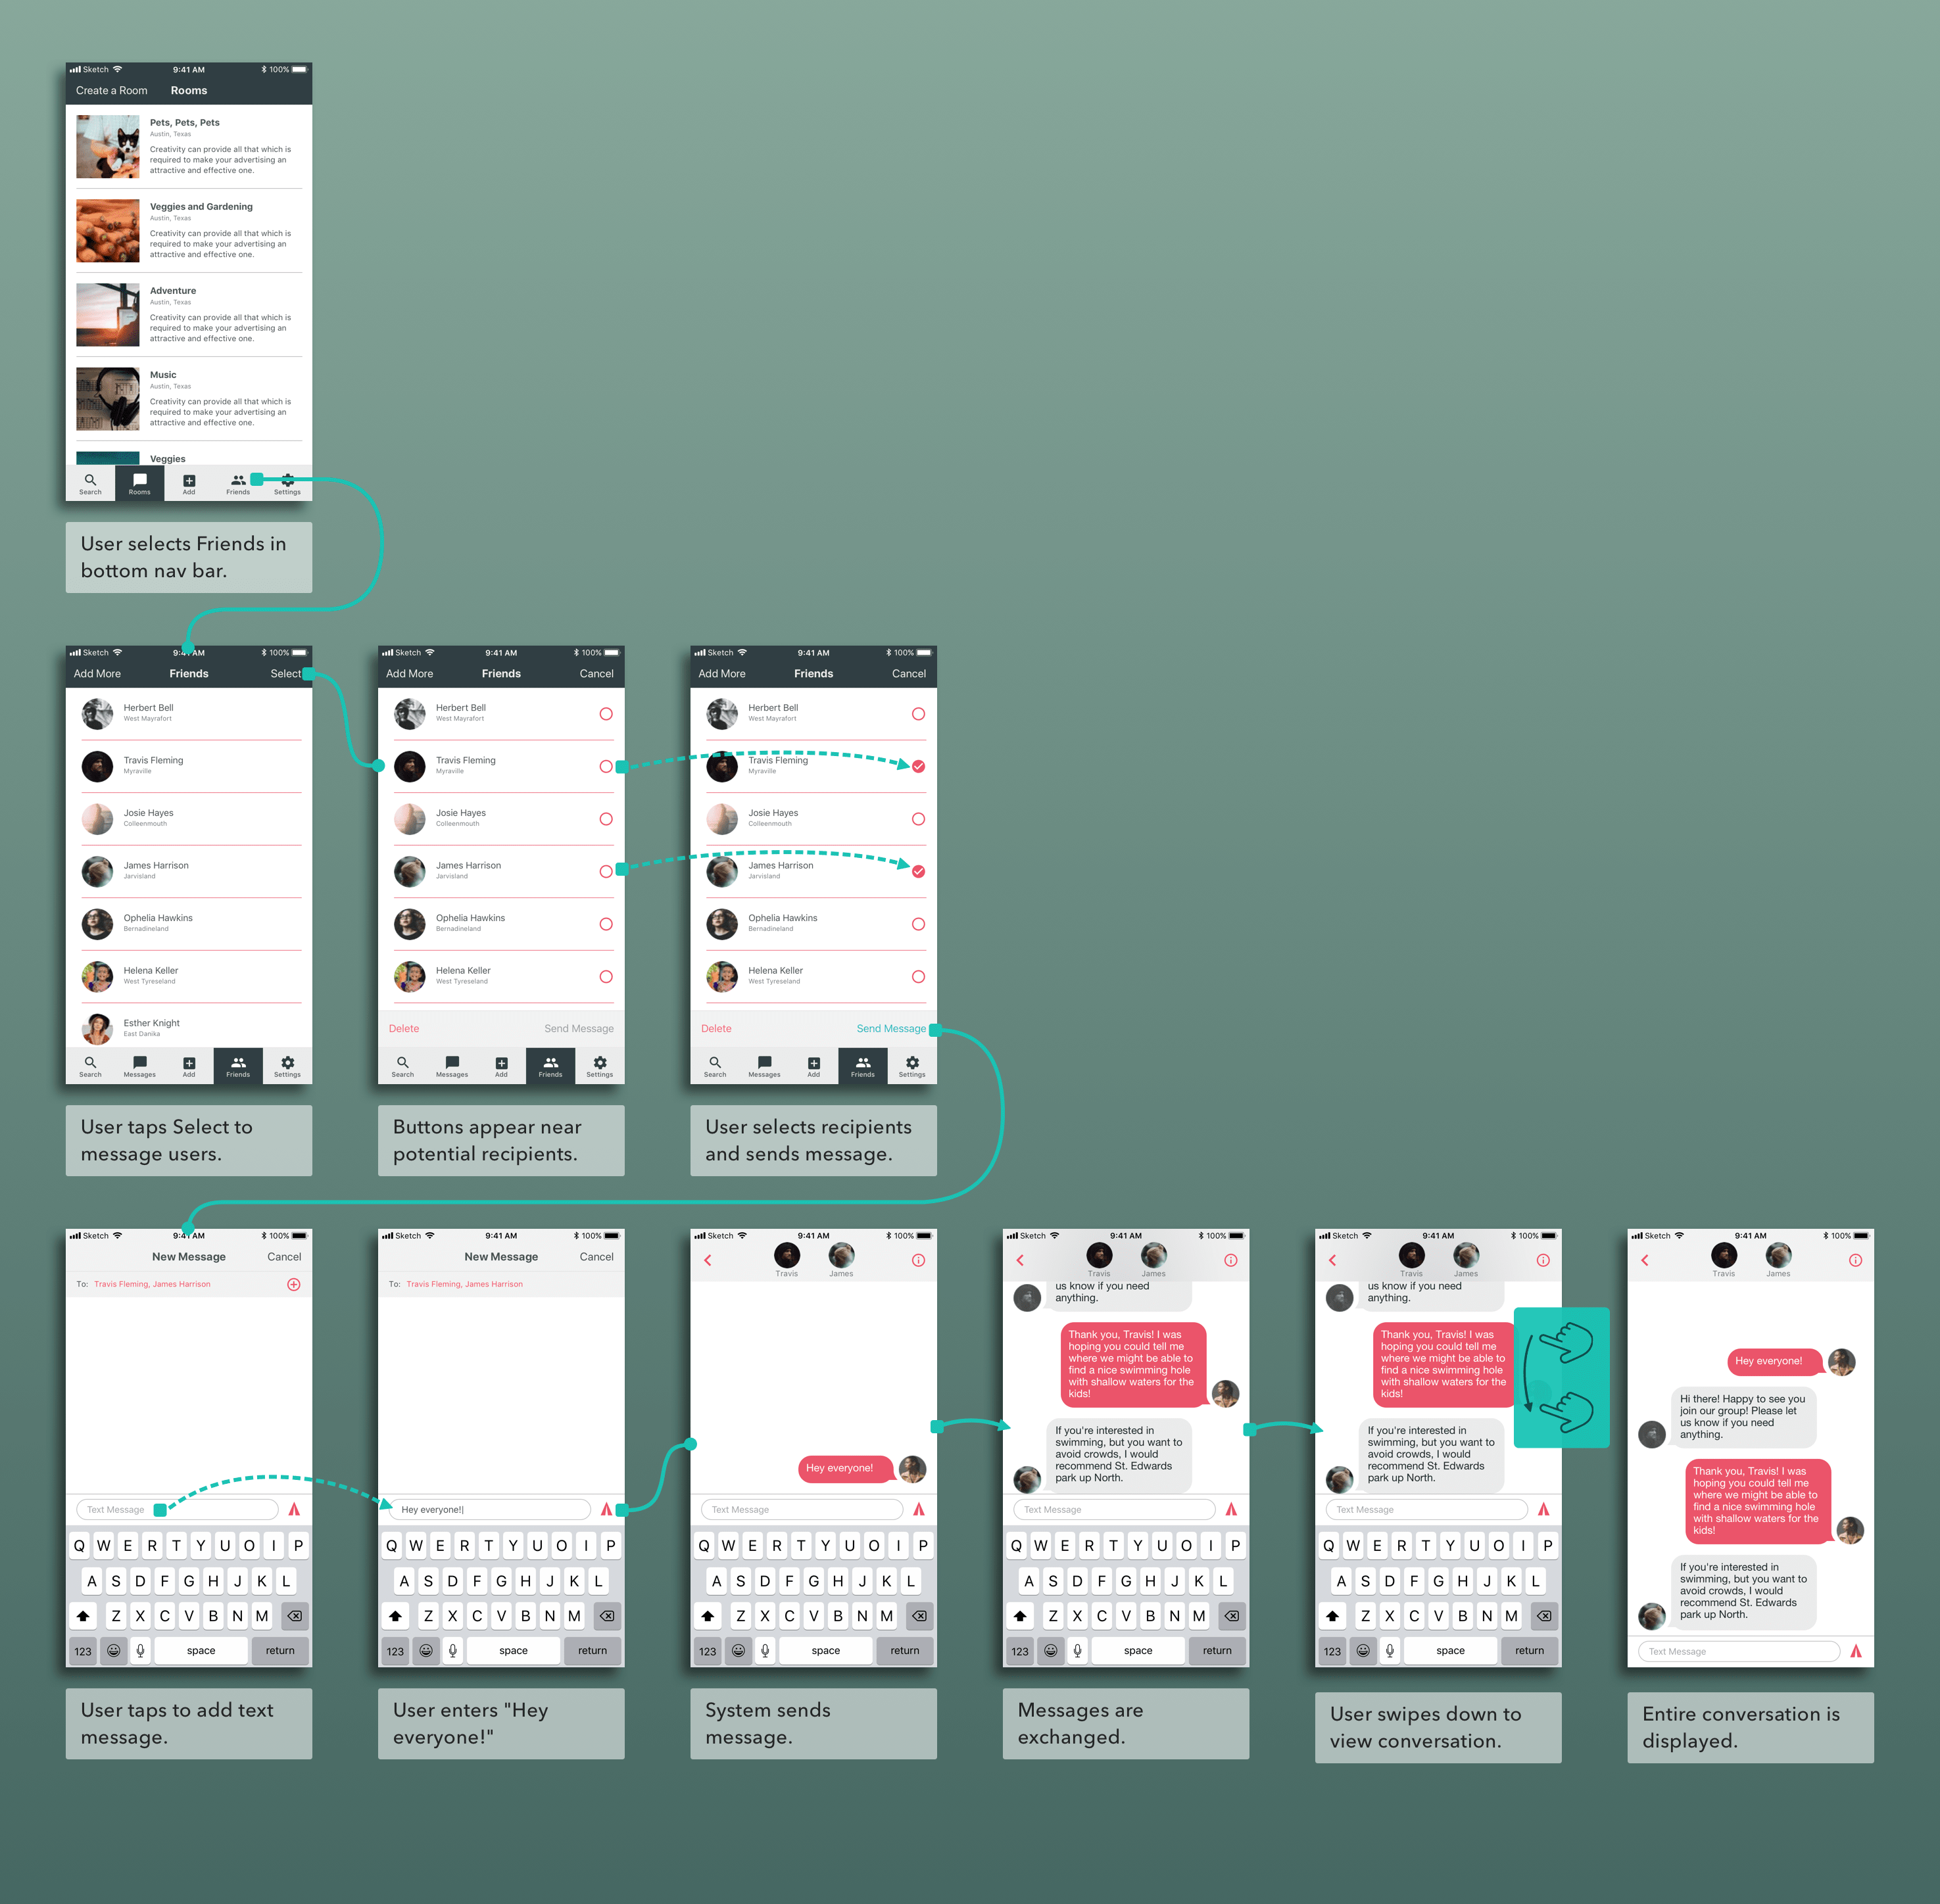 wireframe demonstrating how users might chat with select users